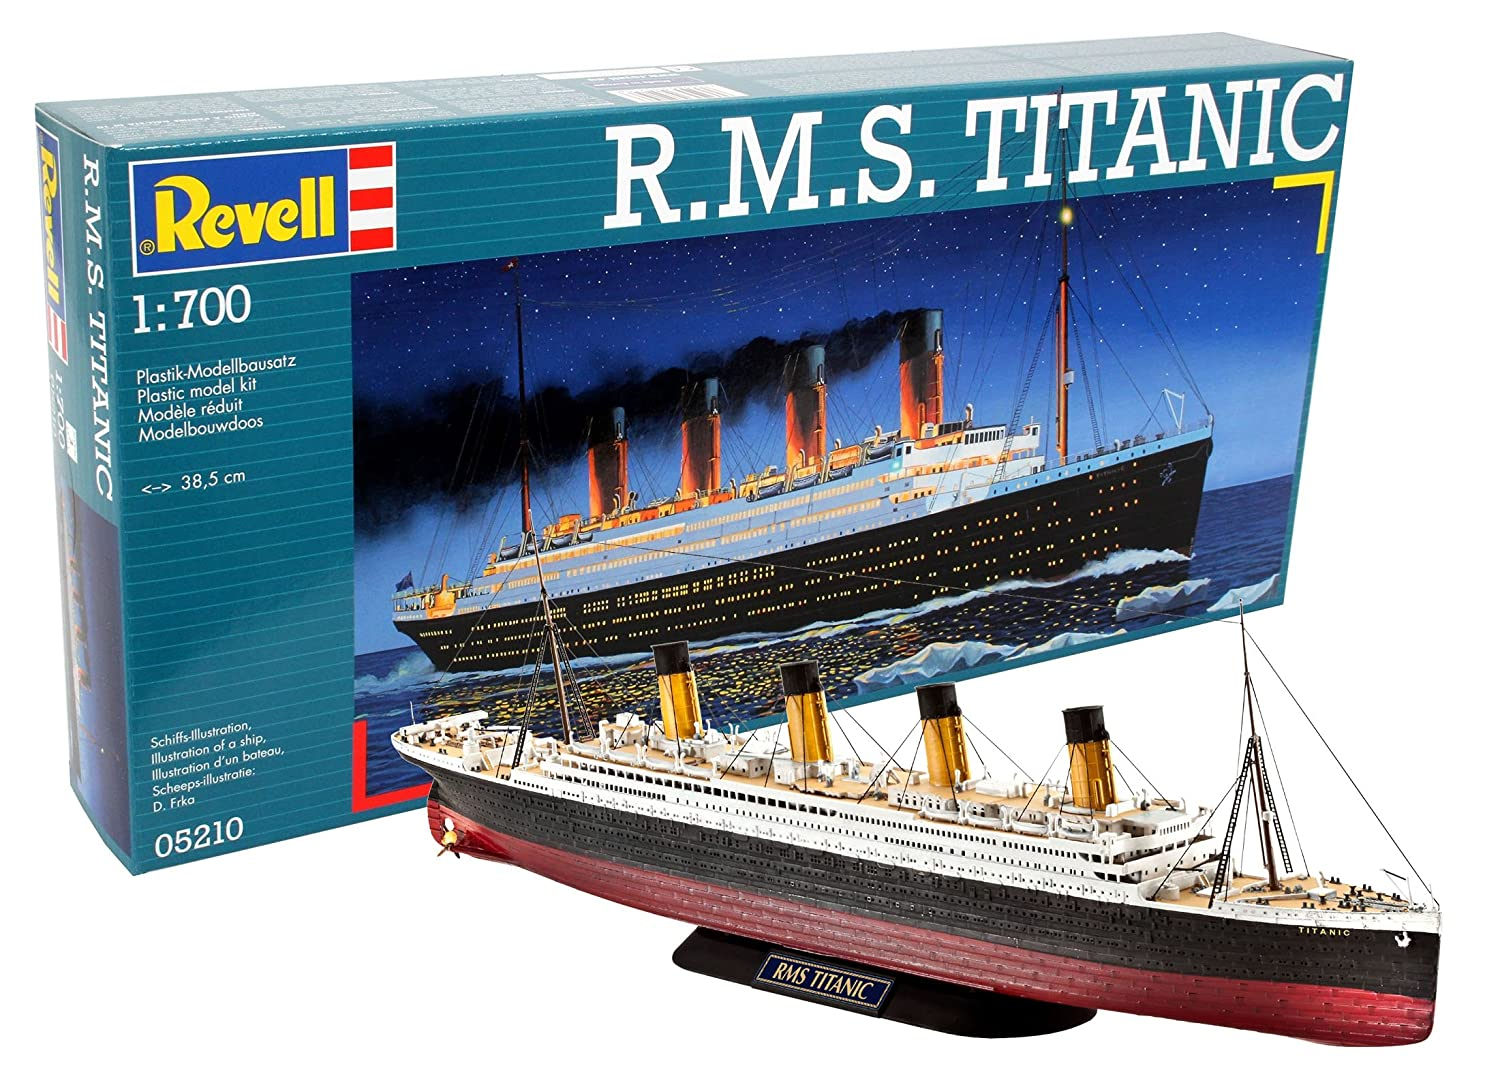 Revell 05210 38.5 cm R.M.S. Titanic Model Kit 80-5210